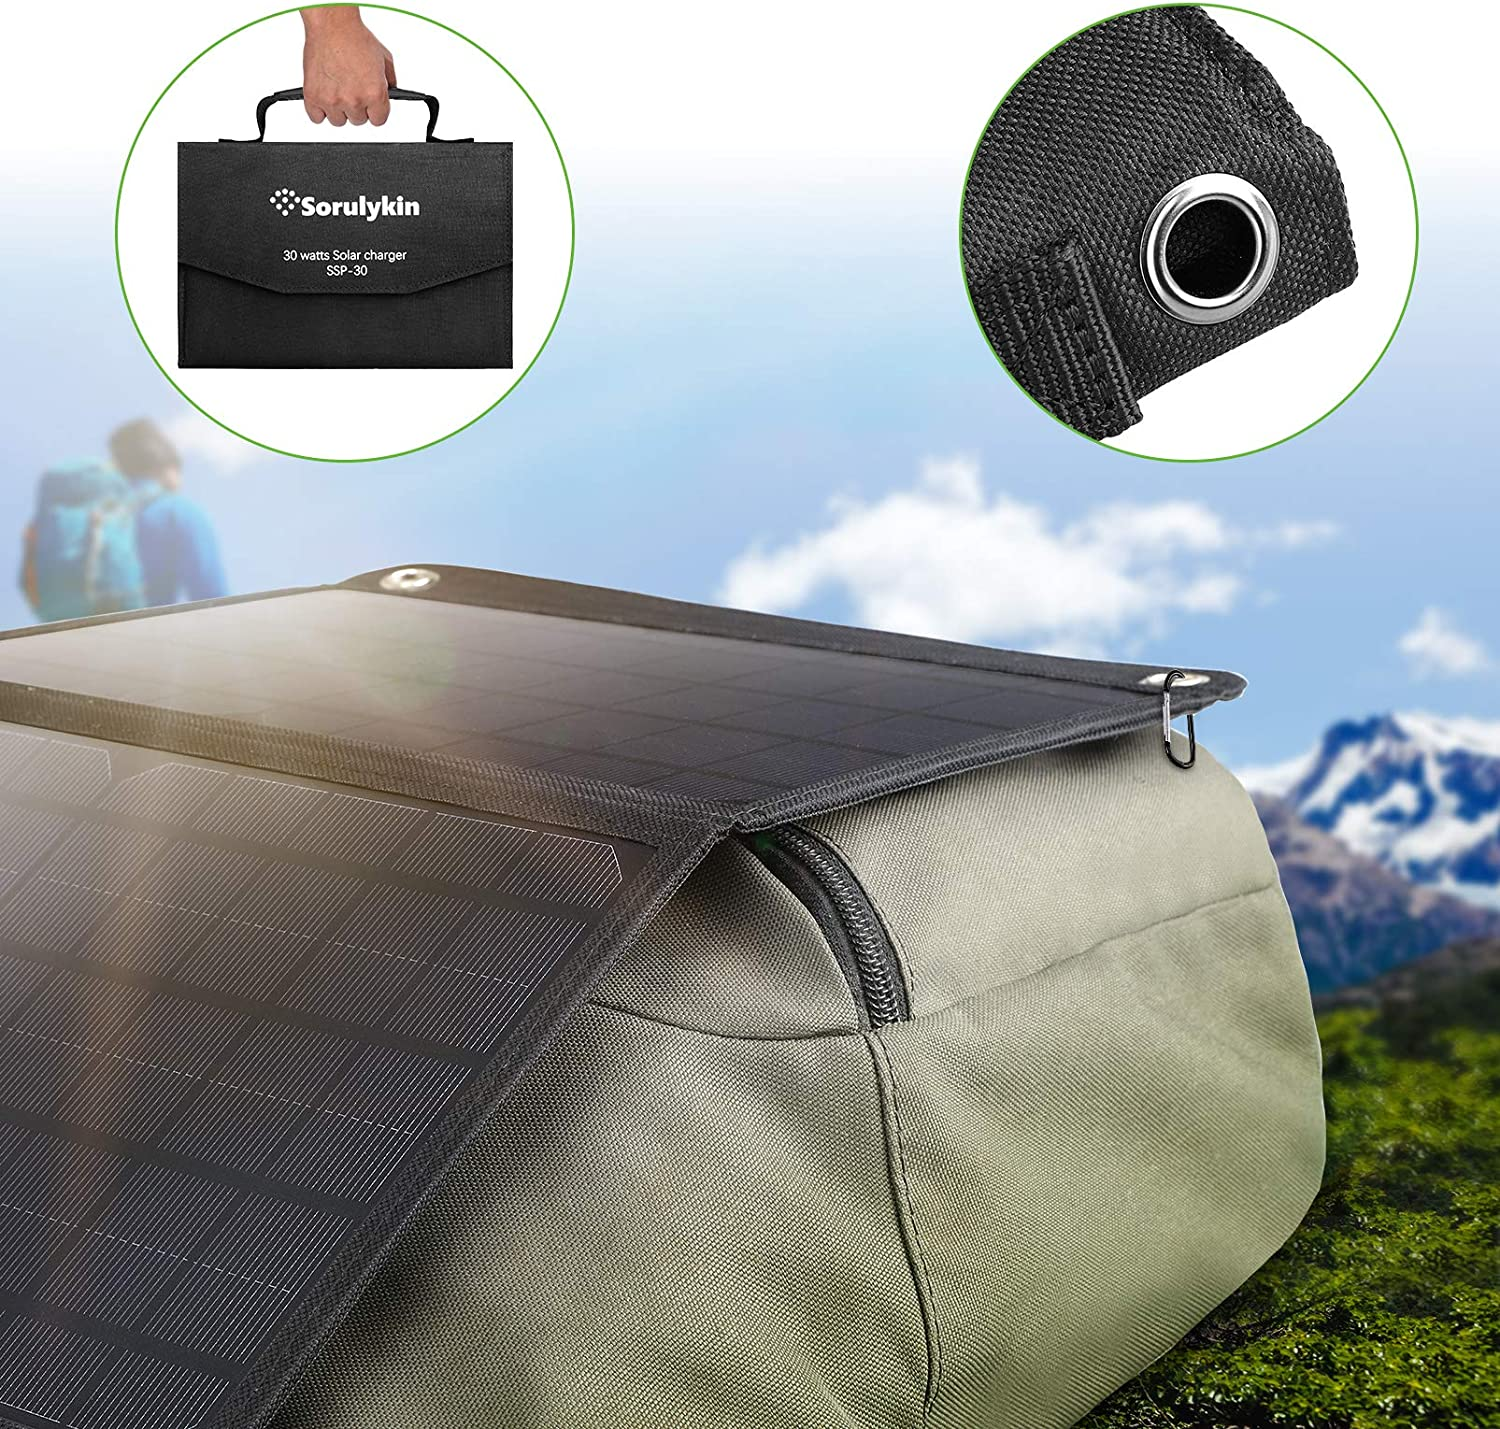 iPad Sorulykin Foldable Solar Panel 30W Portable Solar Charger Kit with Dual 5V USB Ports /& 18V DC Output for Cell Phone Android and Outdoor